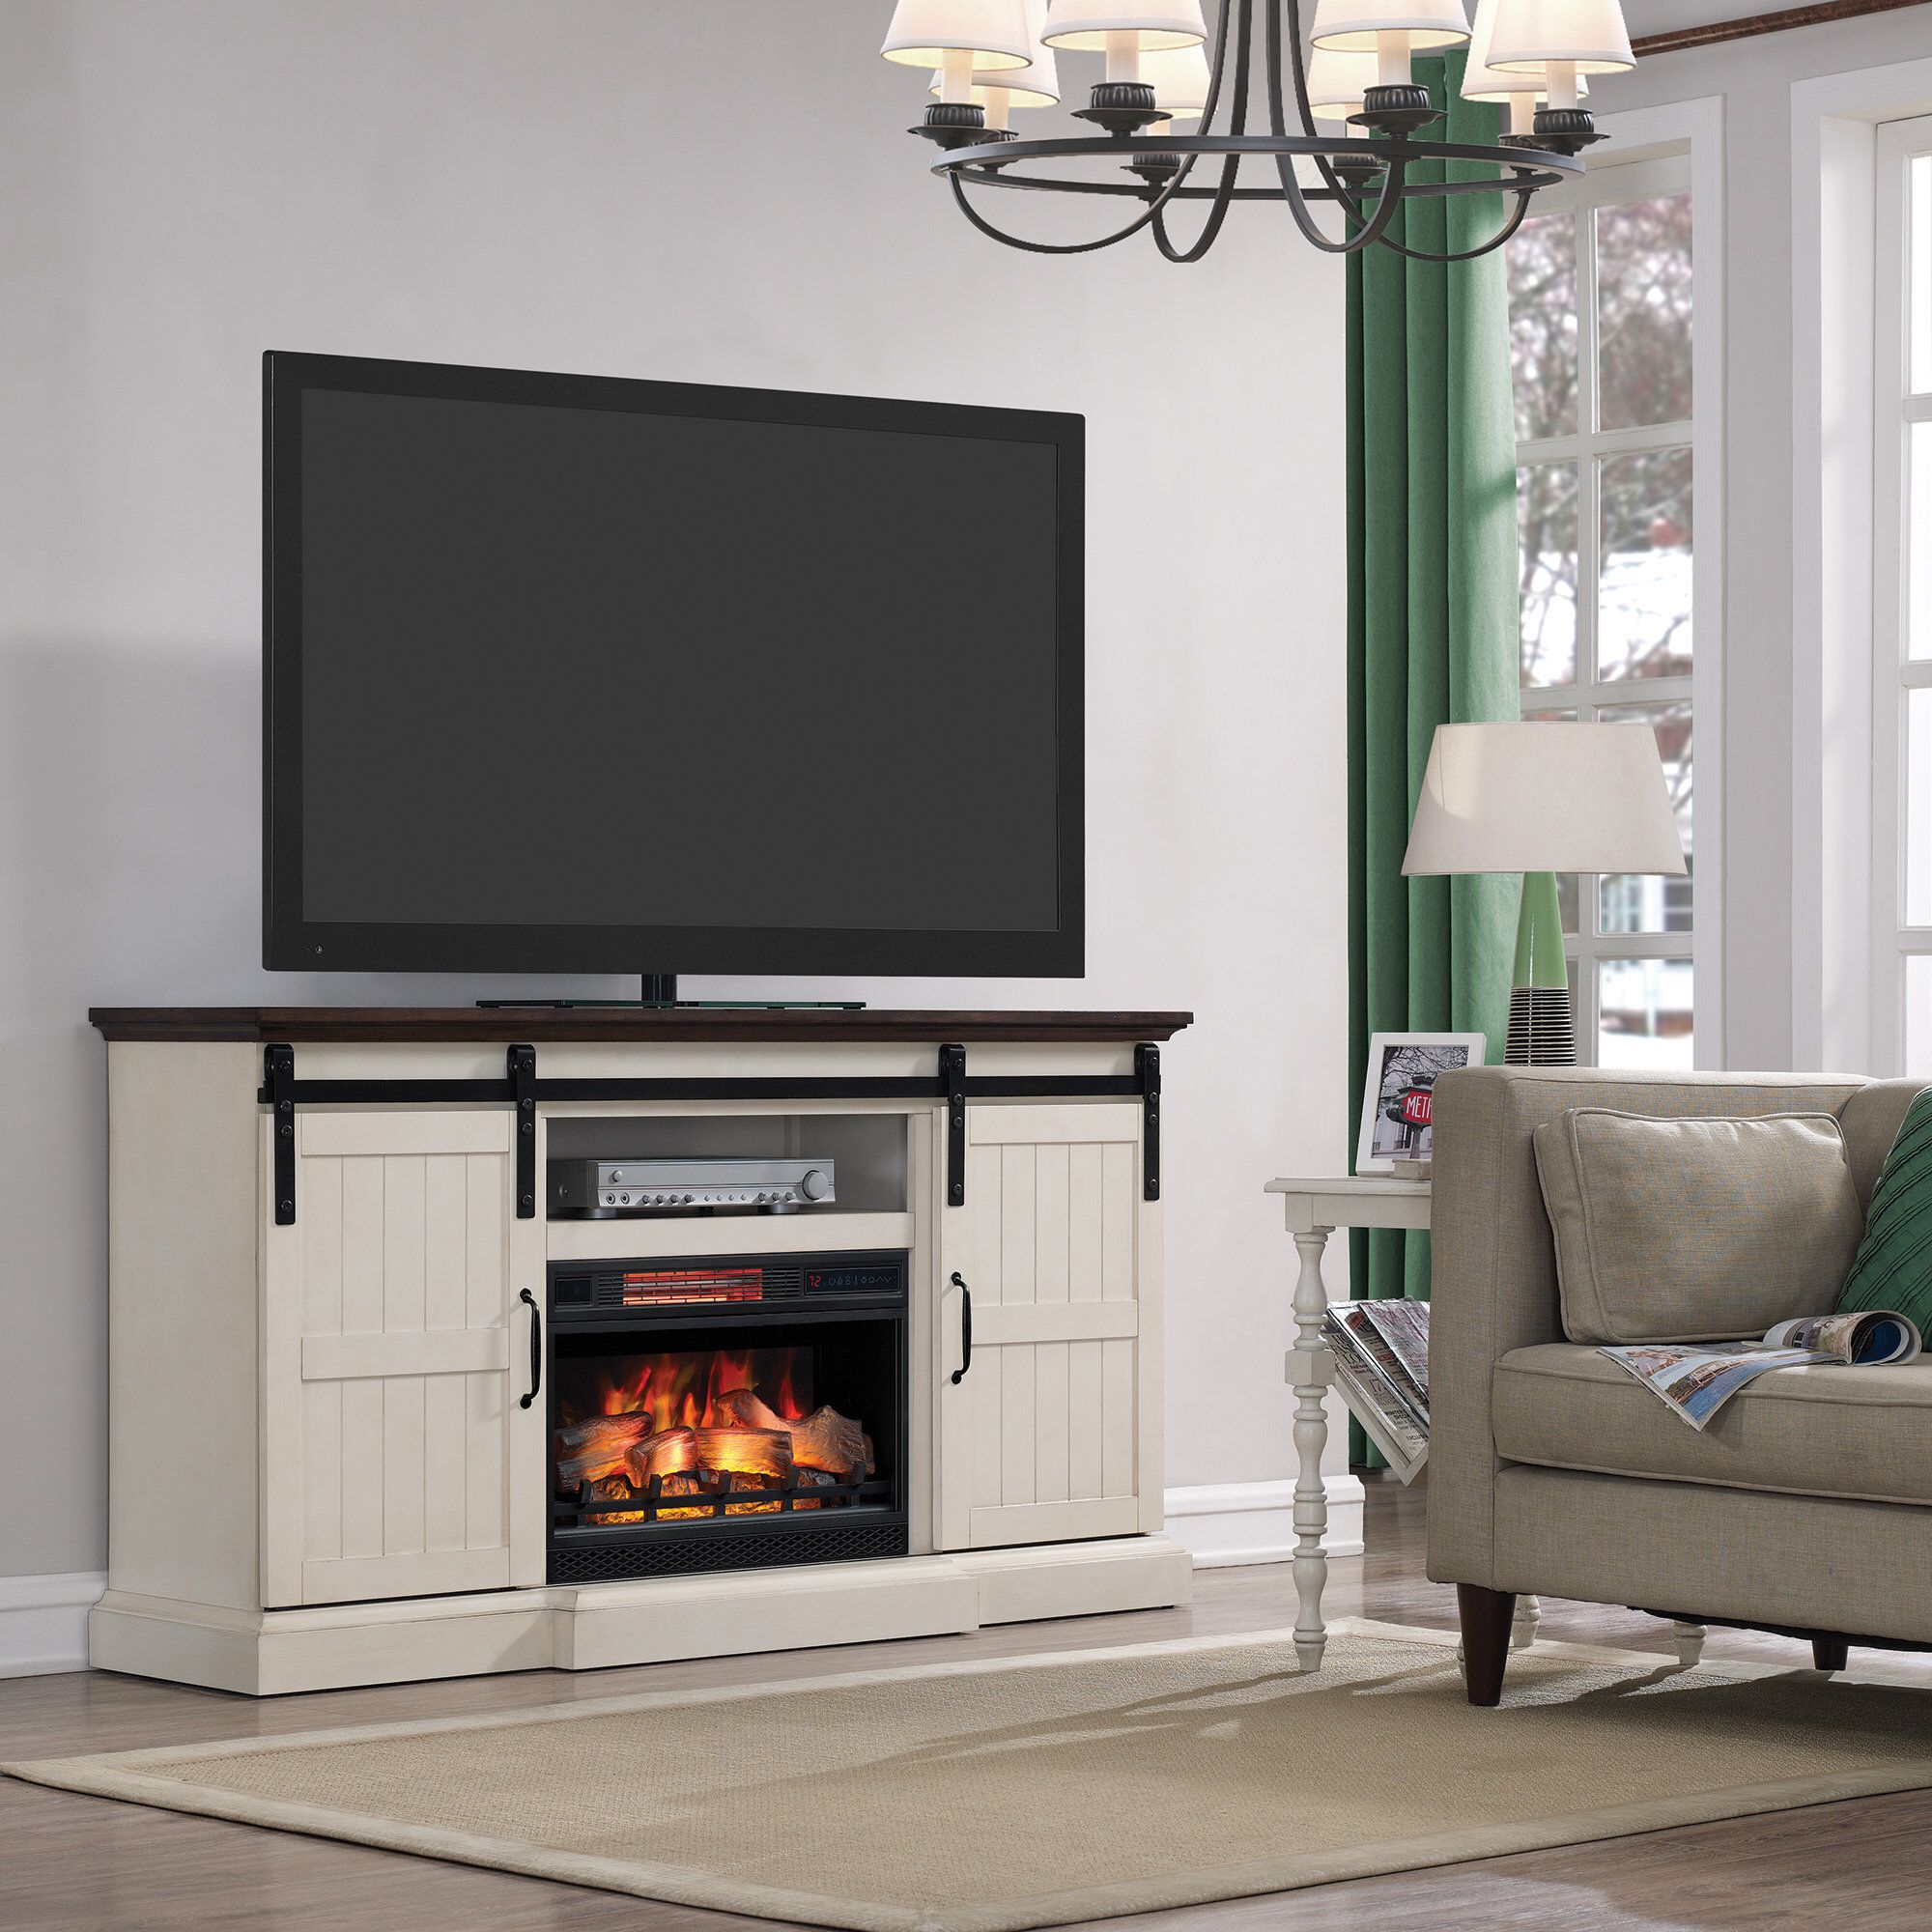 """Barn Door Electric Fireplace New Glendora 66 5"""" Tv Stand with Electric Fireplace"""